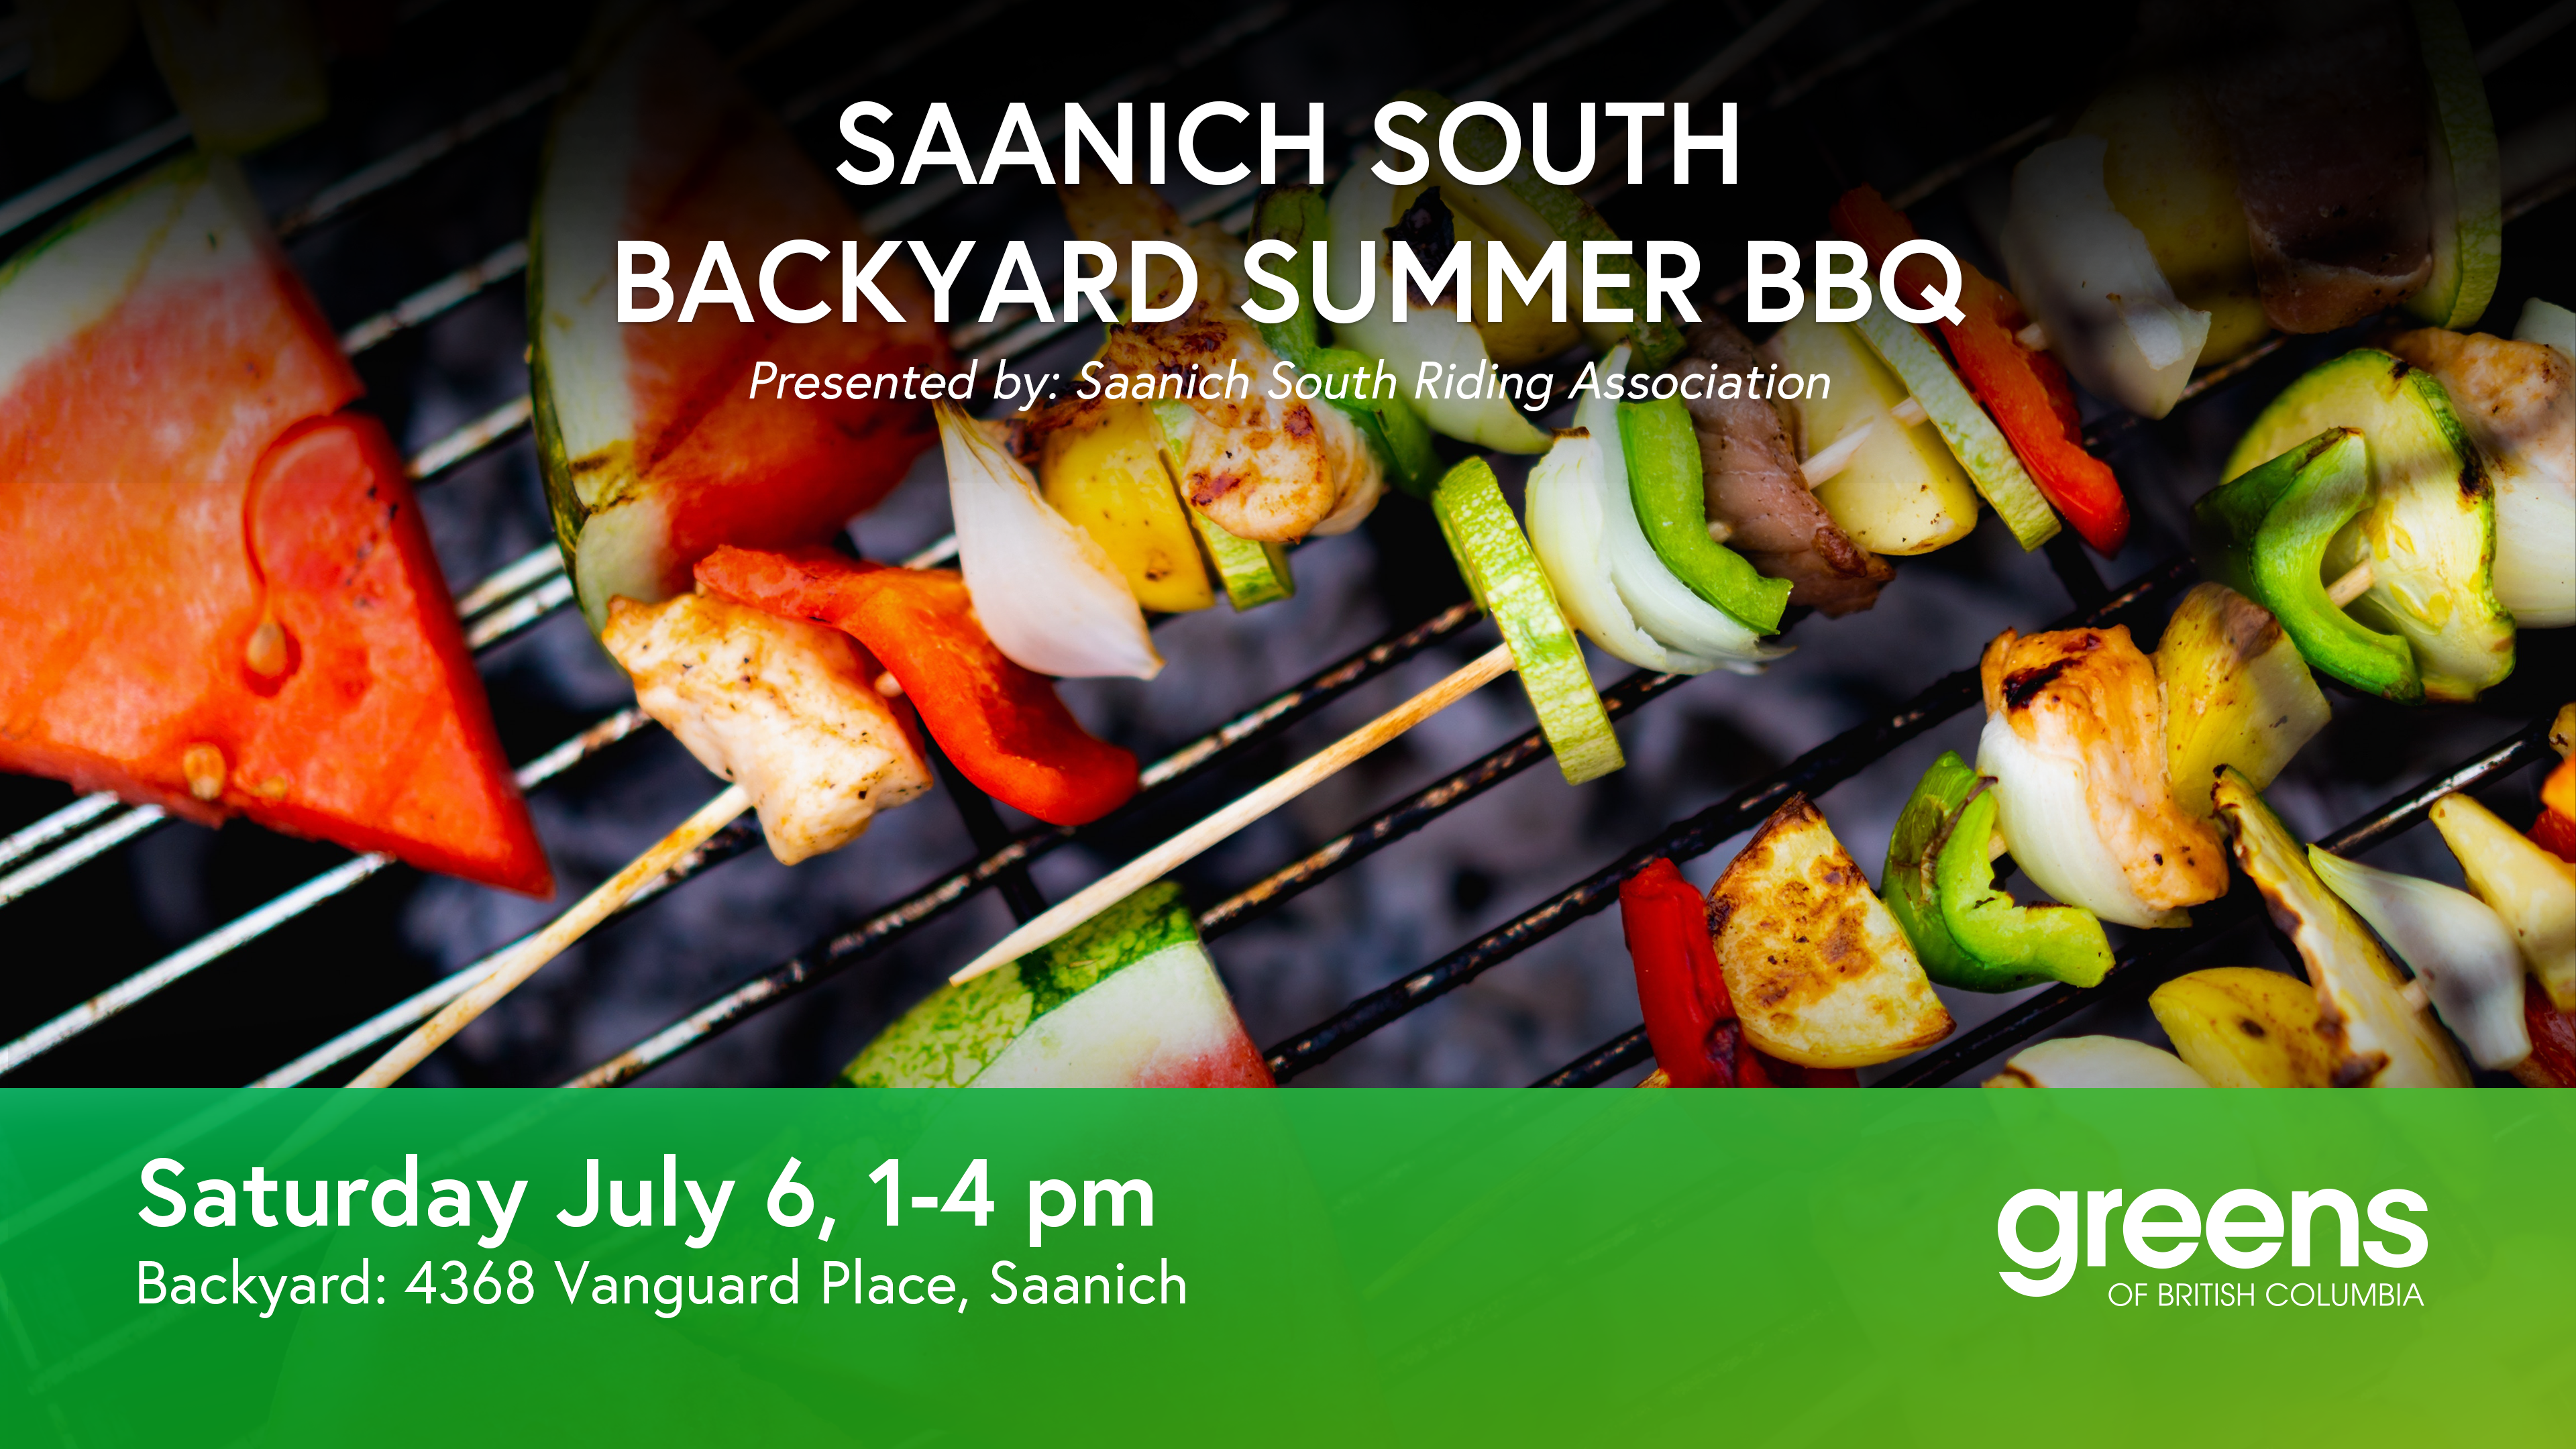 190612-Saanich-South-Backyard-Summer-BBQFacebook-Event-Photo.png